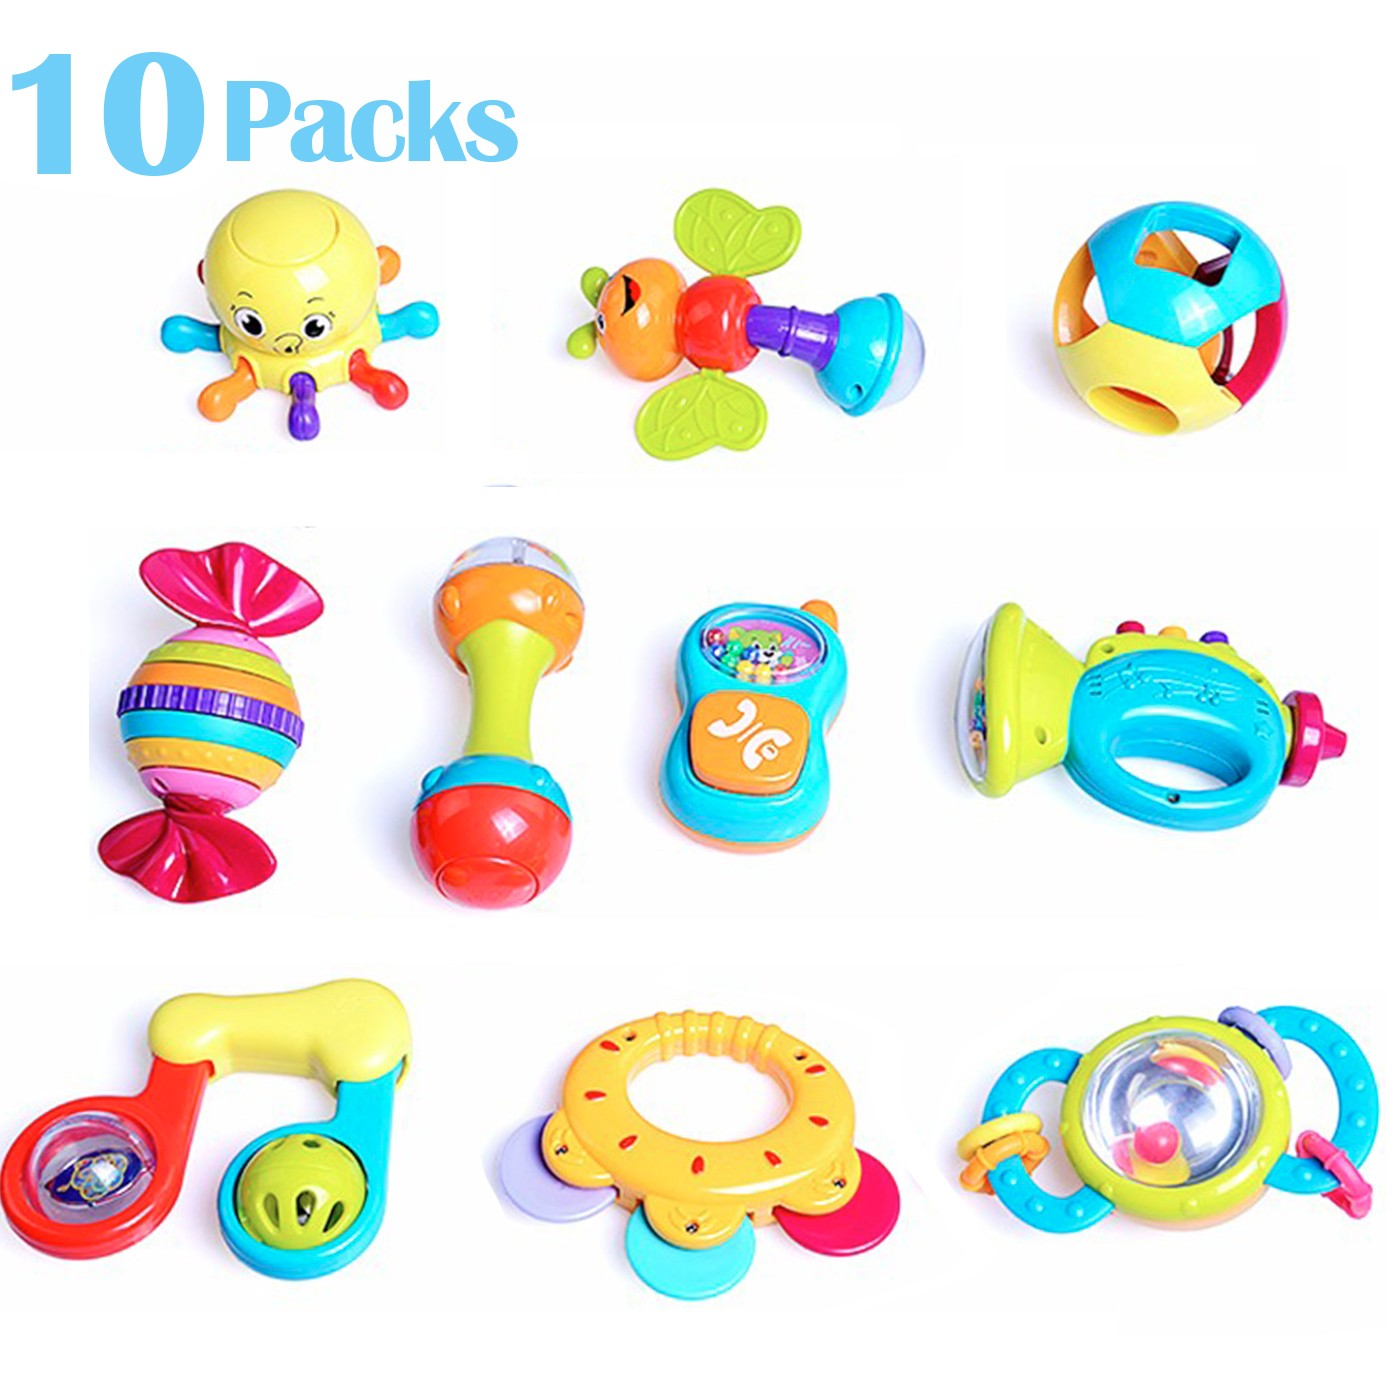 10 Baby Rattles Teether, Ball Shaker, Grab and Spin Rattle, Musical Toy Gift Set for Baby Infant, Newborn by Oak Leaf